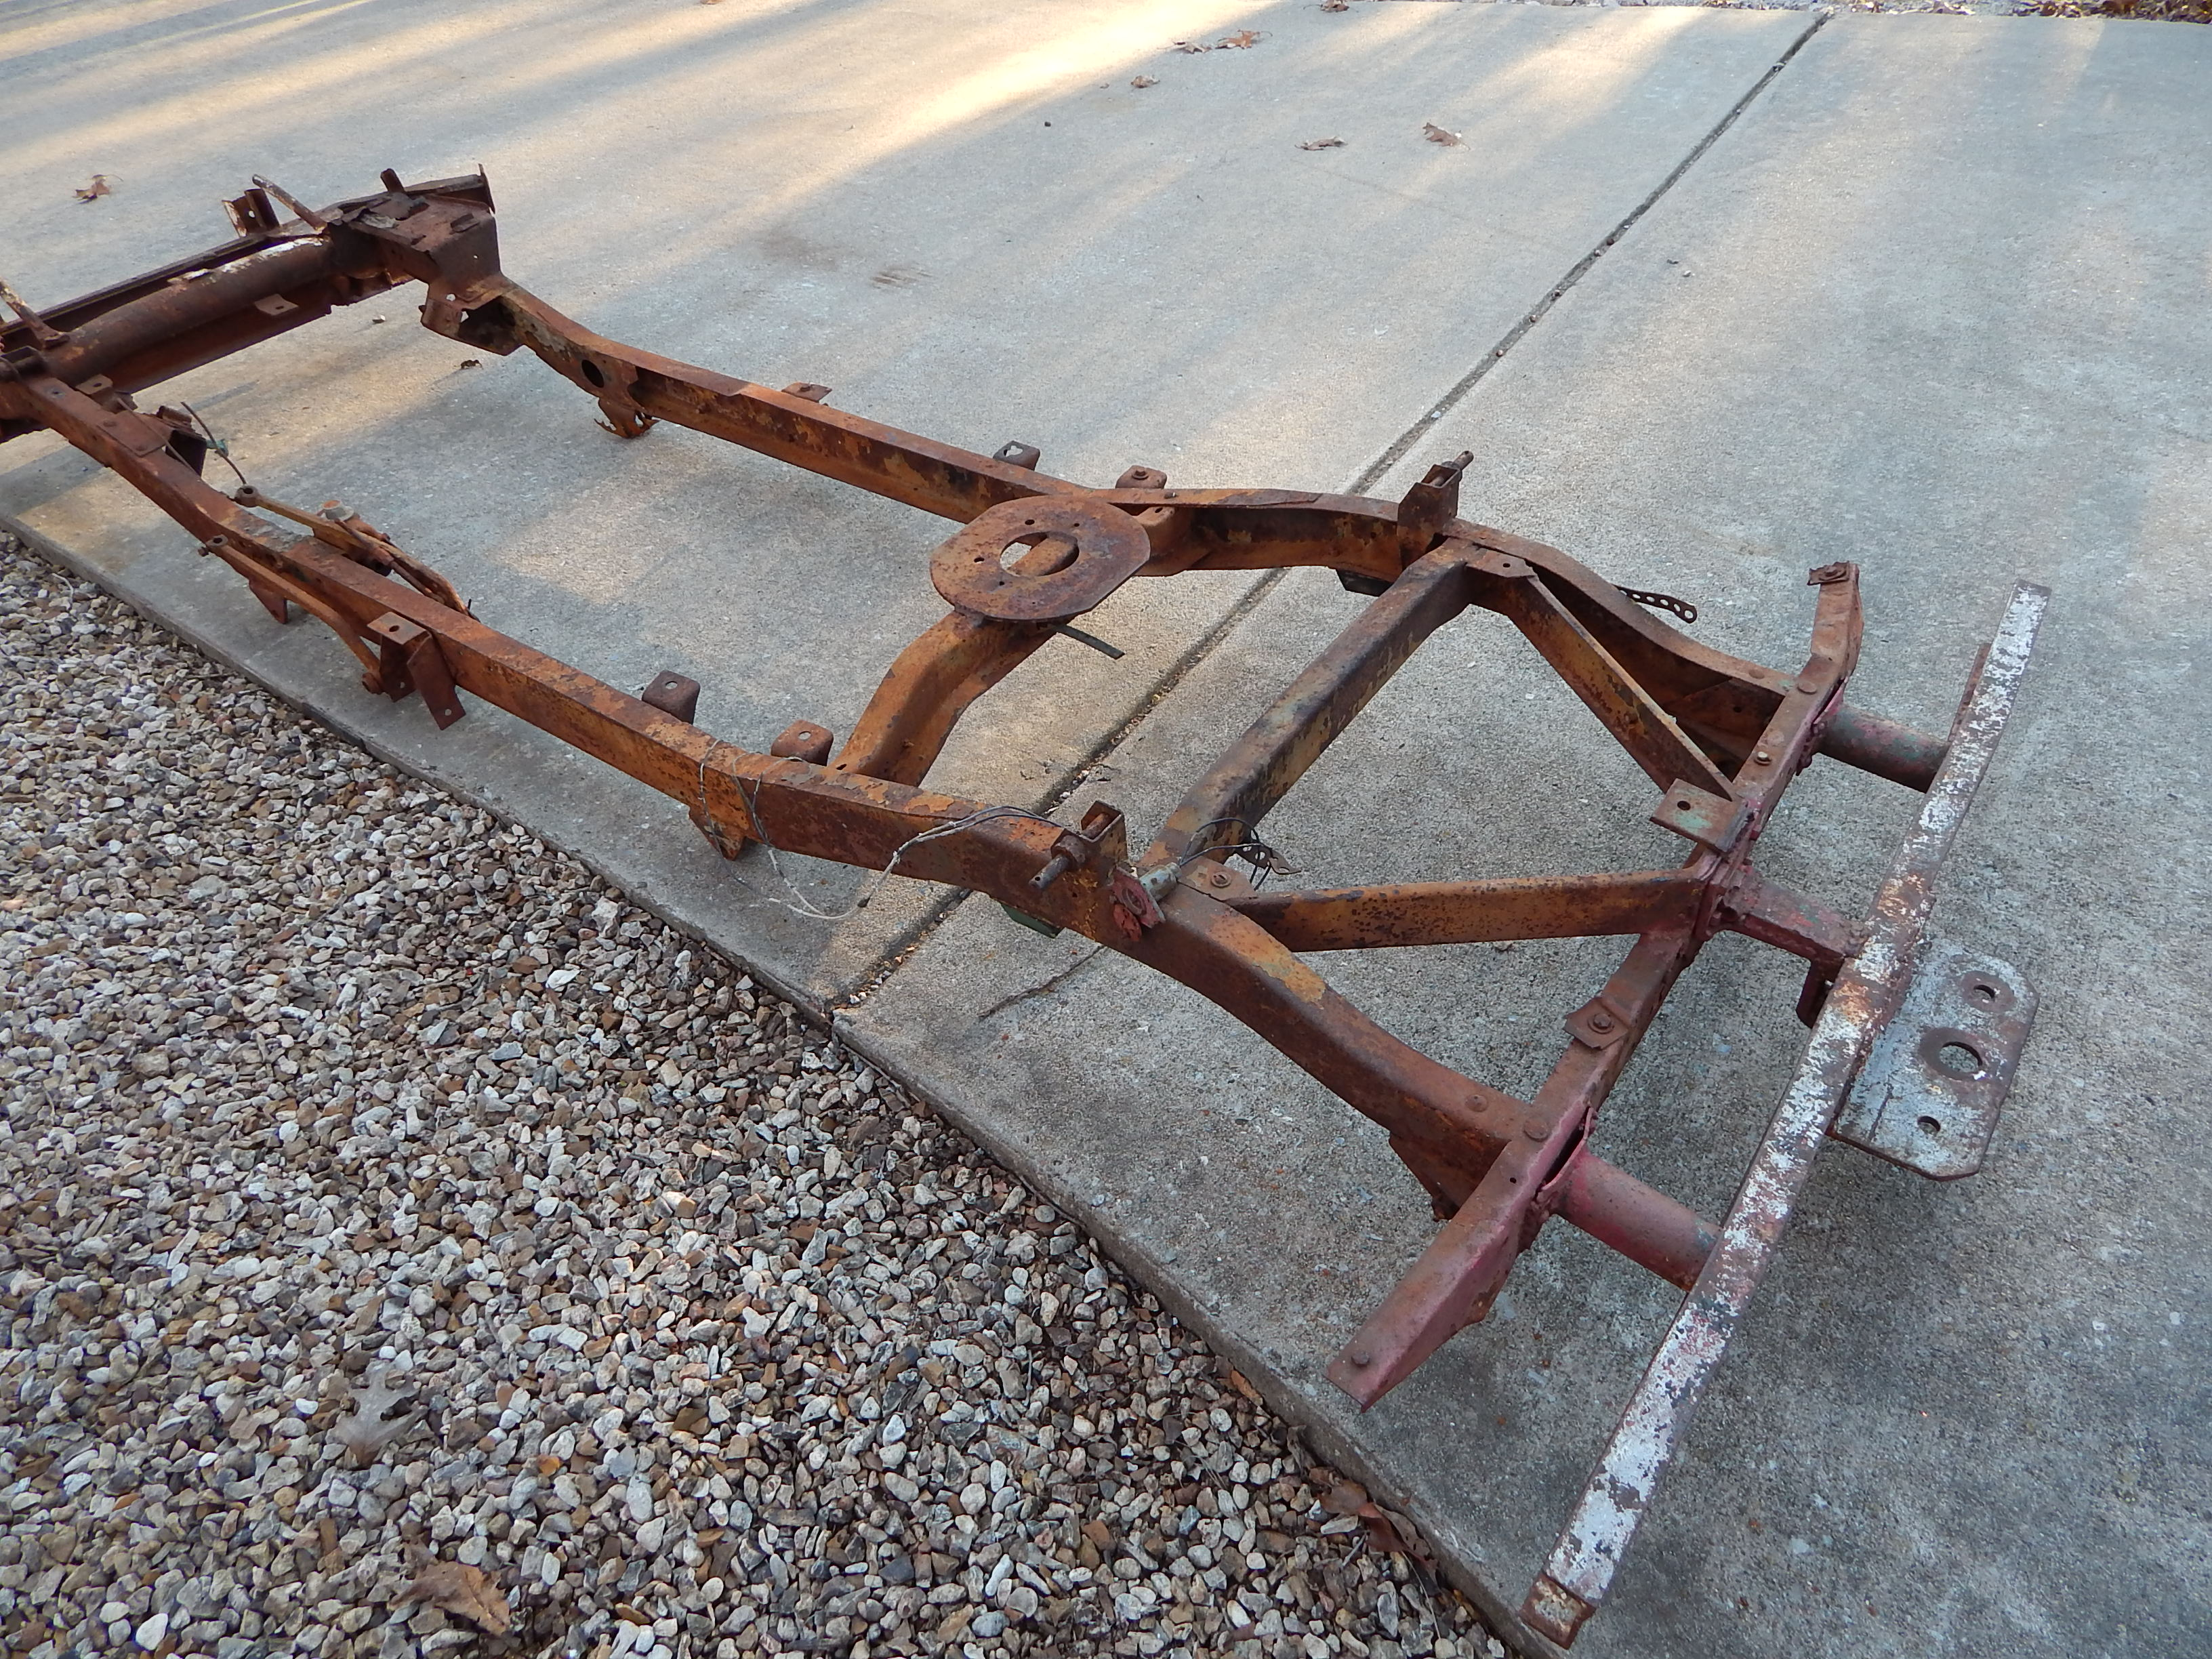 Willys Jeep For Sale >> 1945 Willys MB Frame For Sale   Classic Military Vehicles